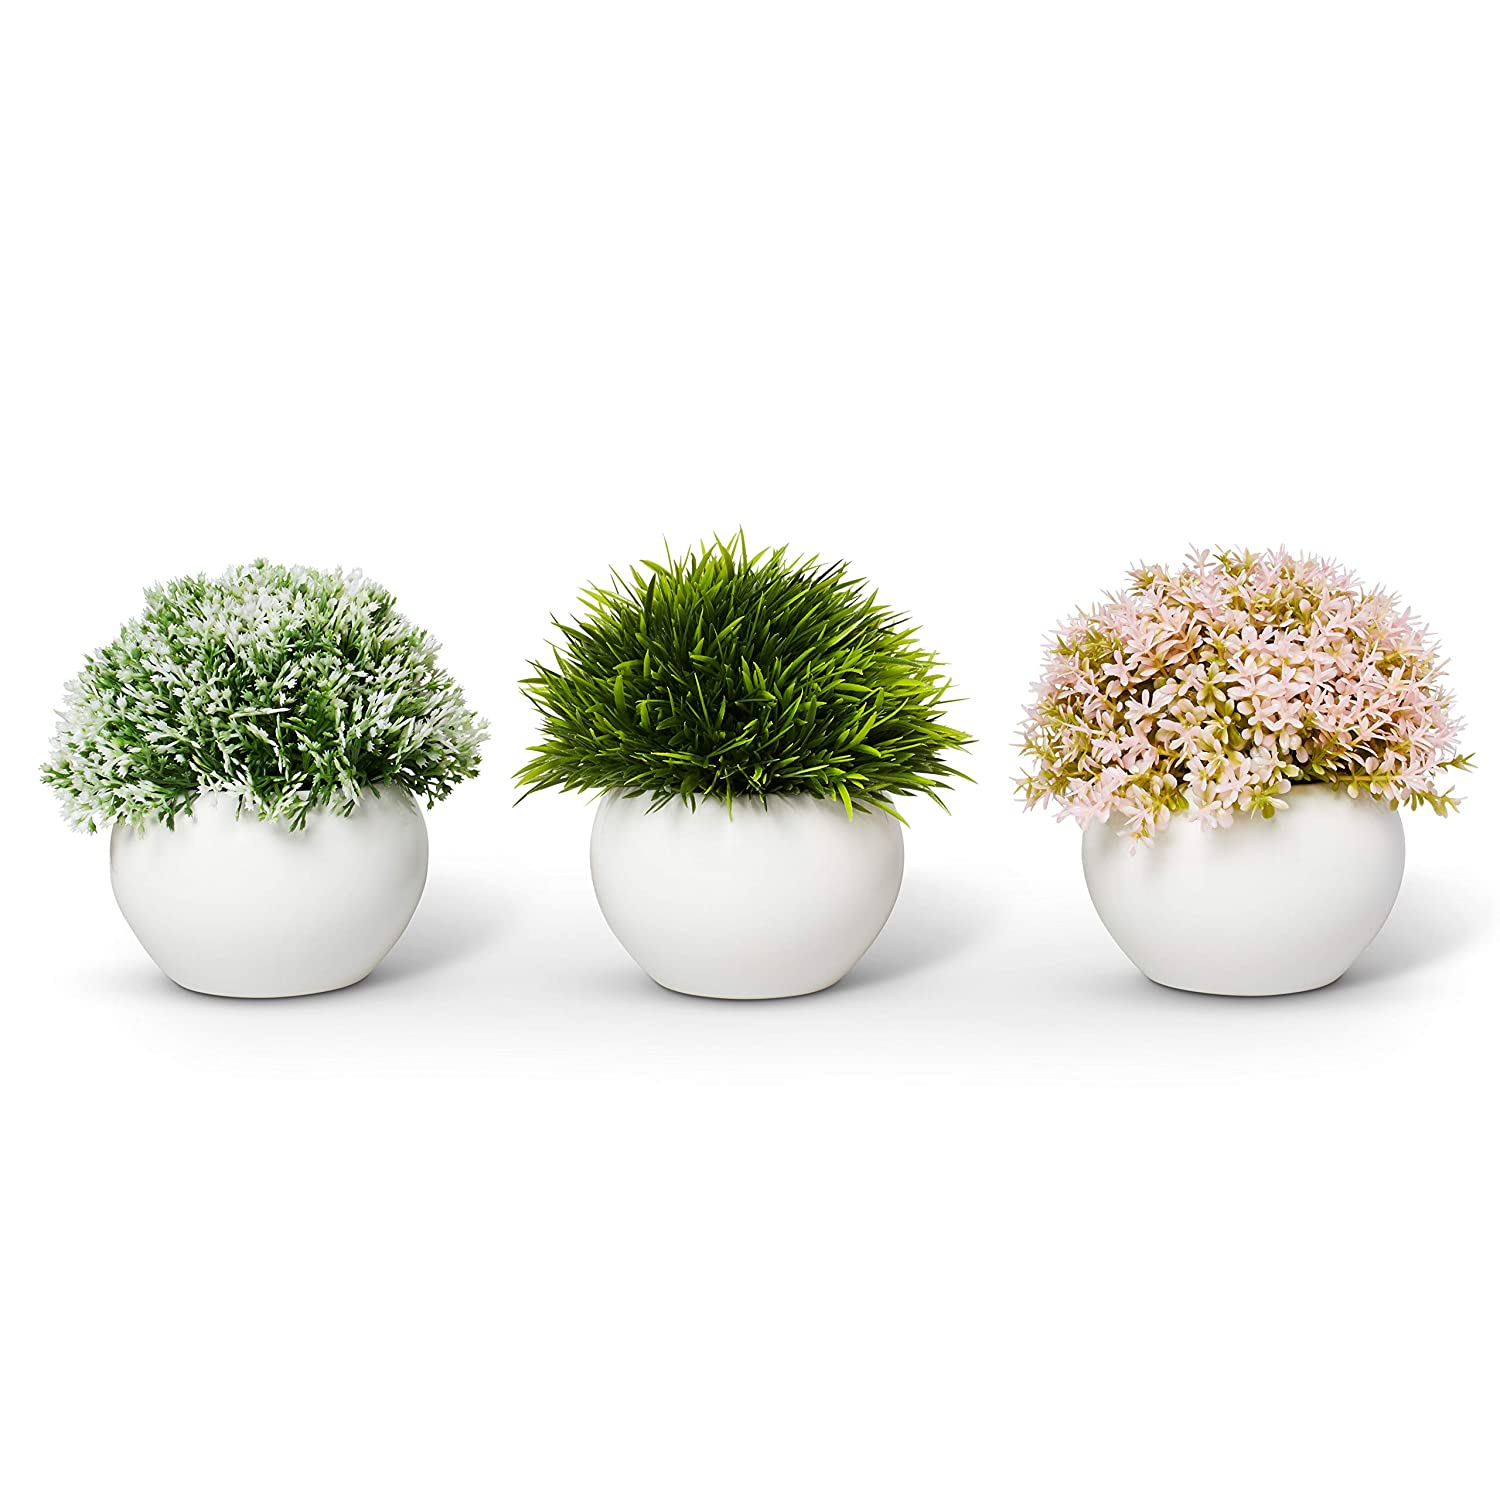 Farmhouse Plants with Pot - Artificial Plants For Decoration - Office/Kitchen/Bathroom/Bedroom/Mantle/Balcony/Home Decor - Faux Plants Set - Farmhouse Decor - Home Decor (Pink & Green)